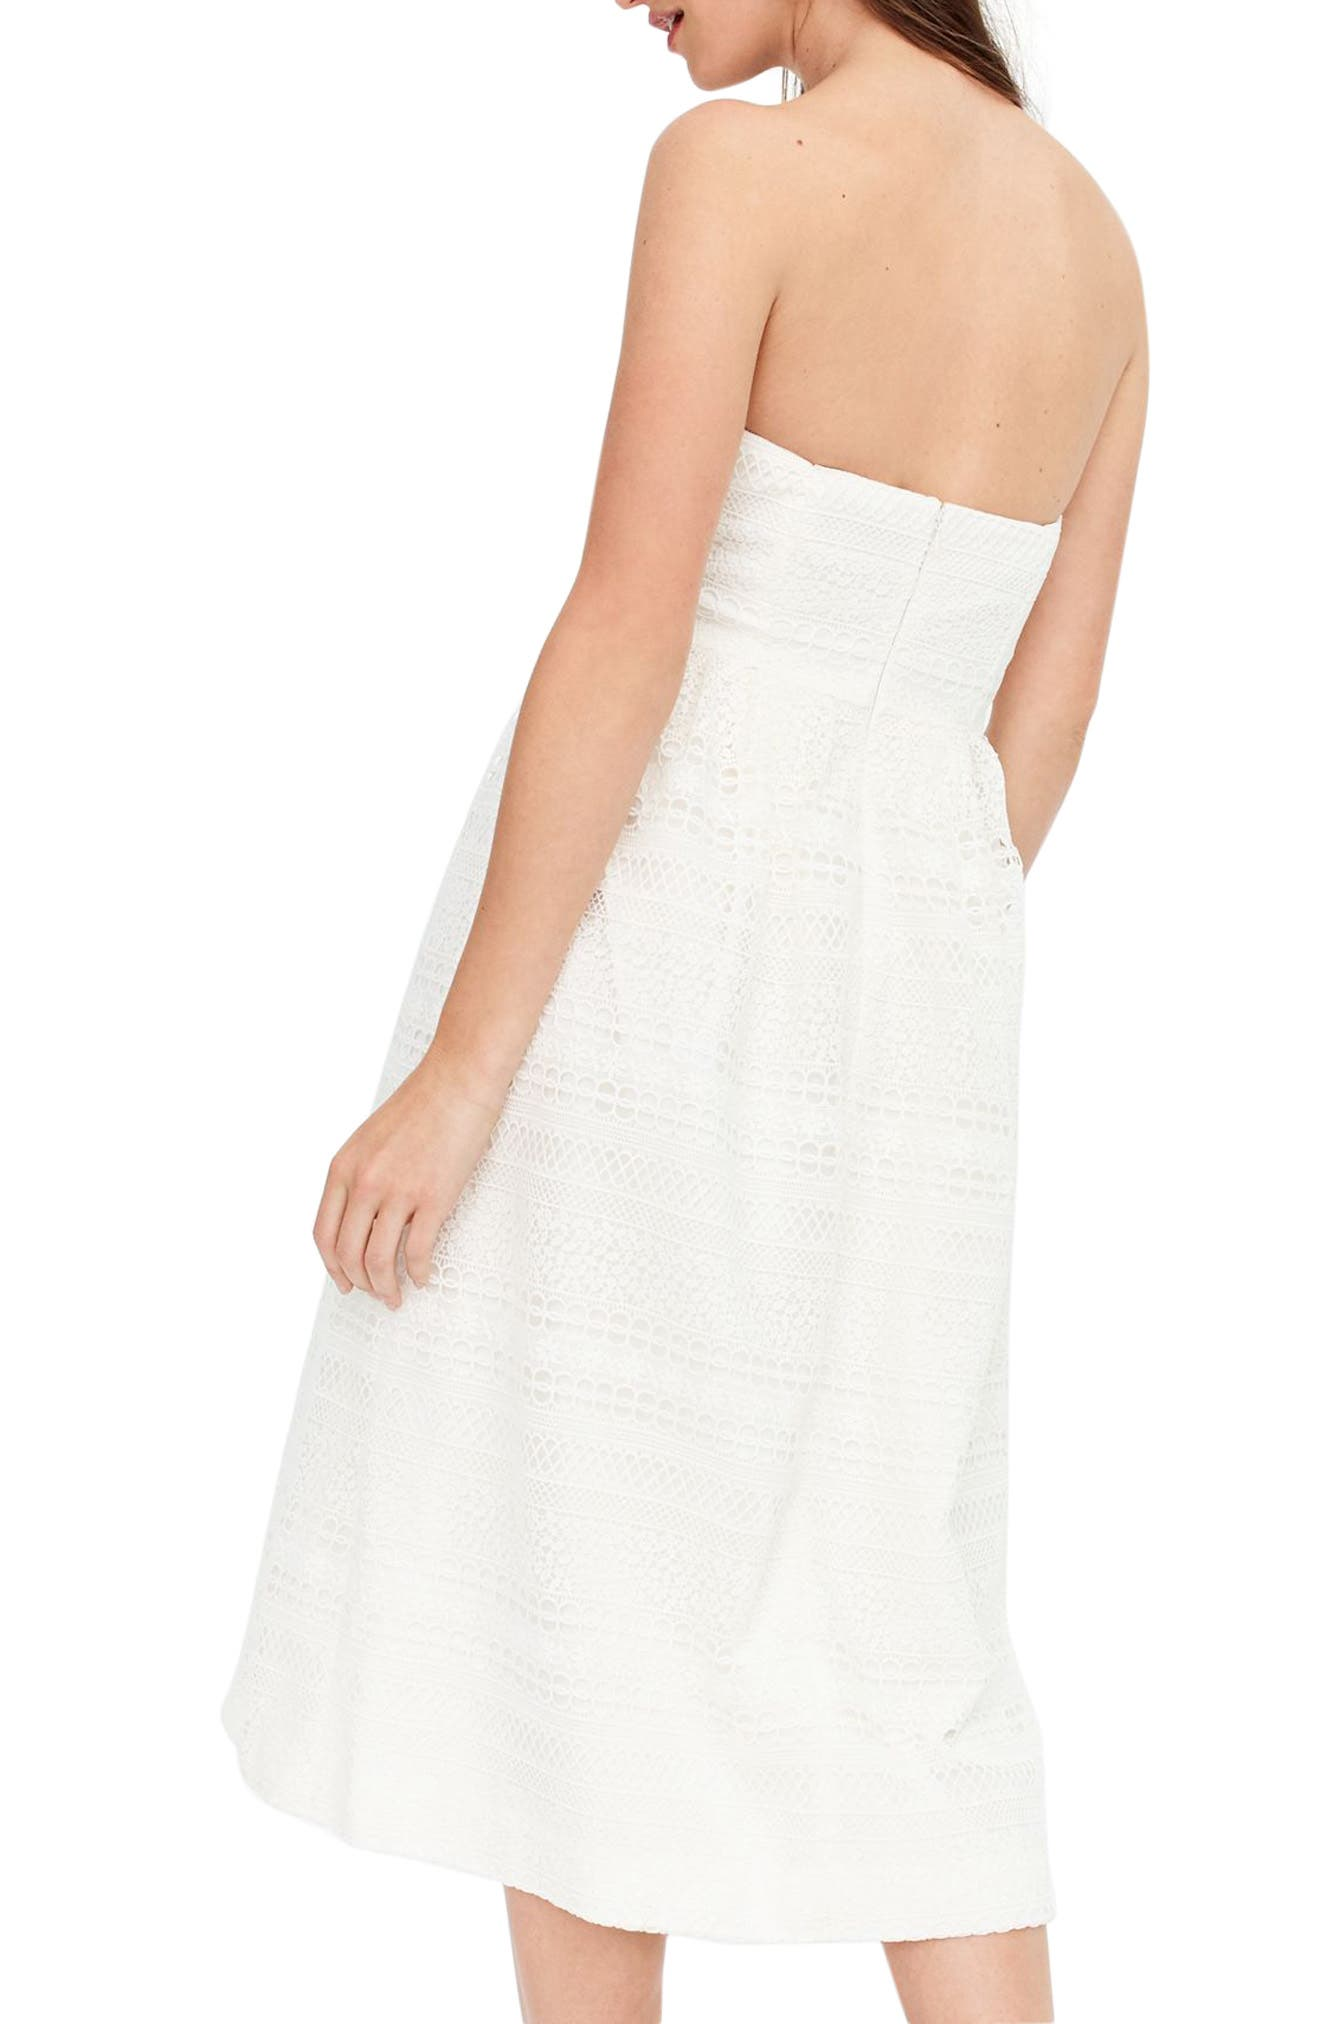 J.Crew Strapless Lace Dress,                             Alternate thumbnail 3, color,                             Ivory